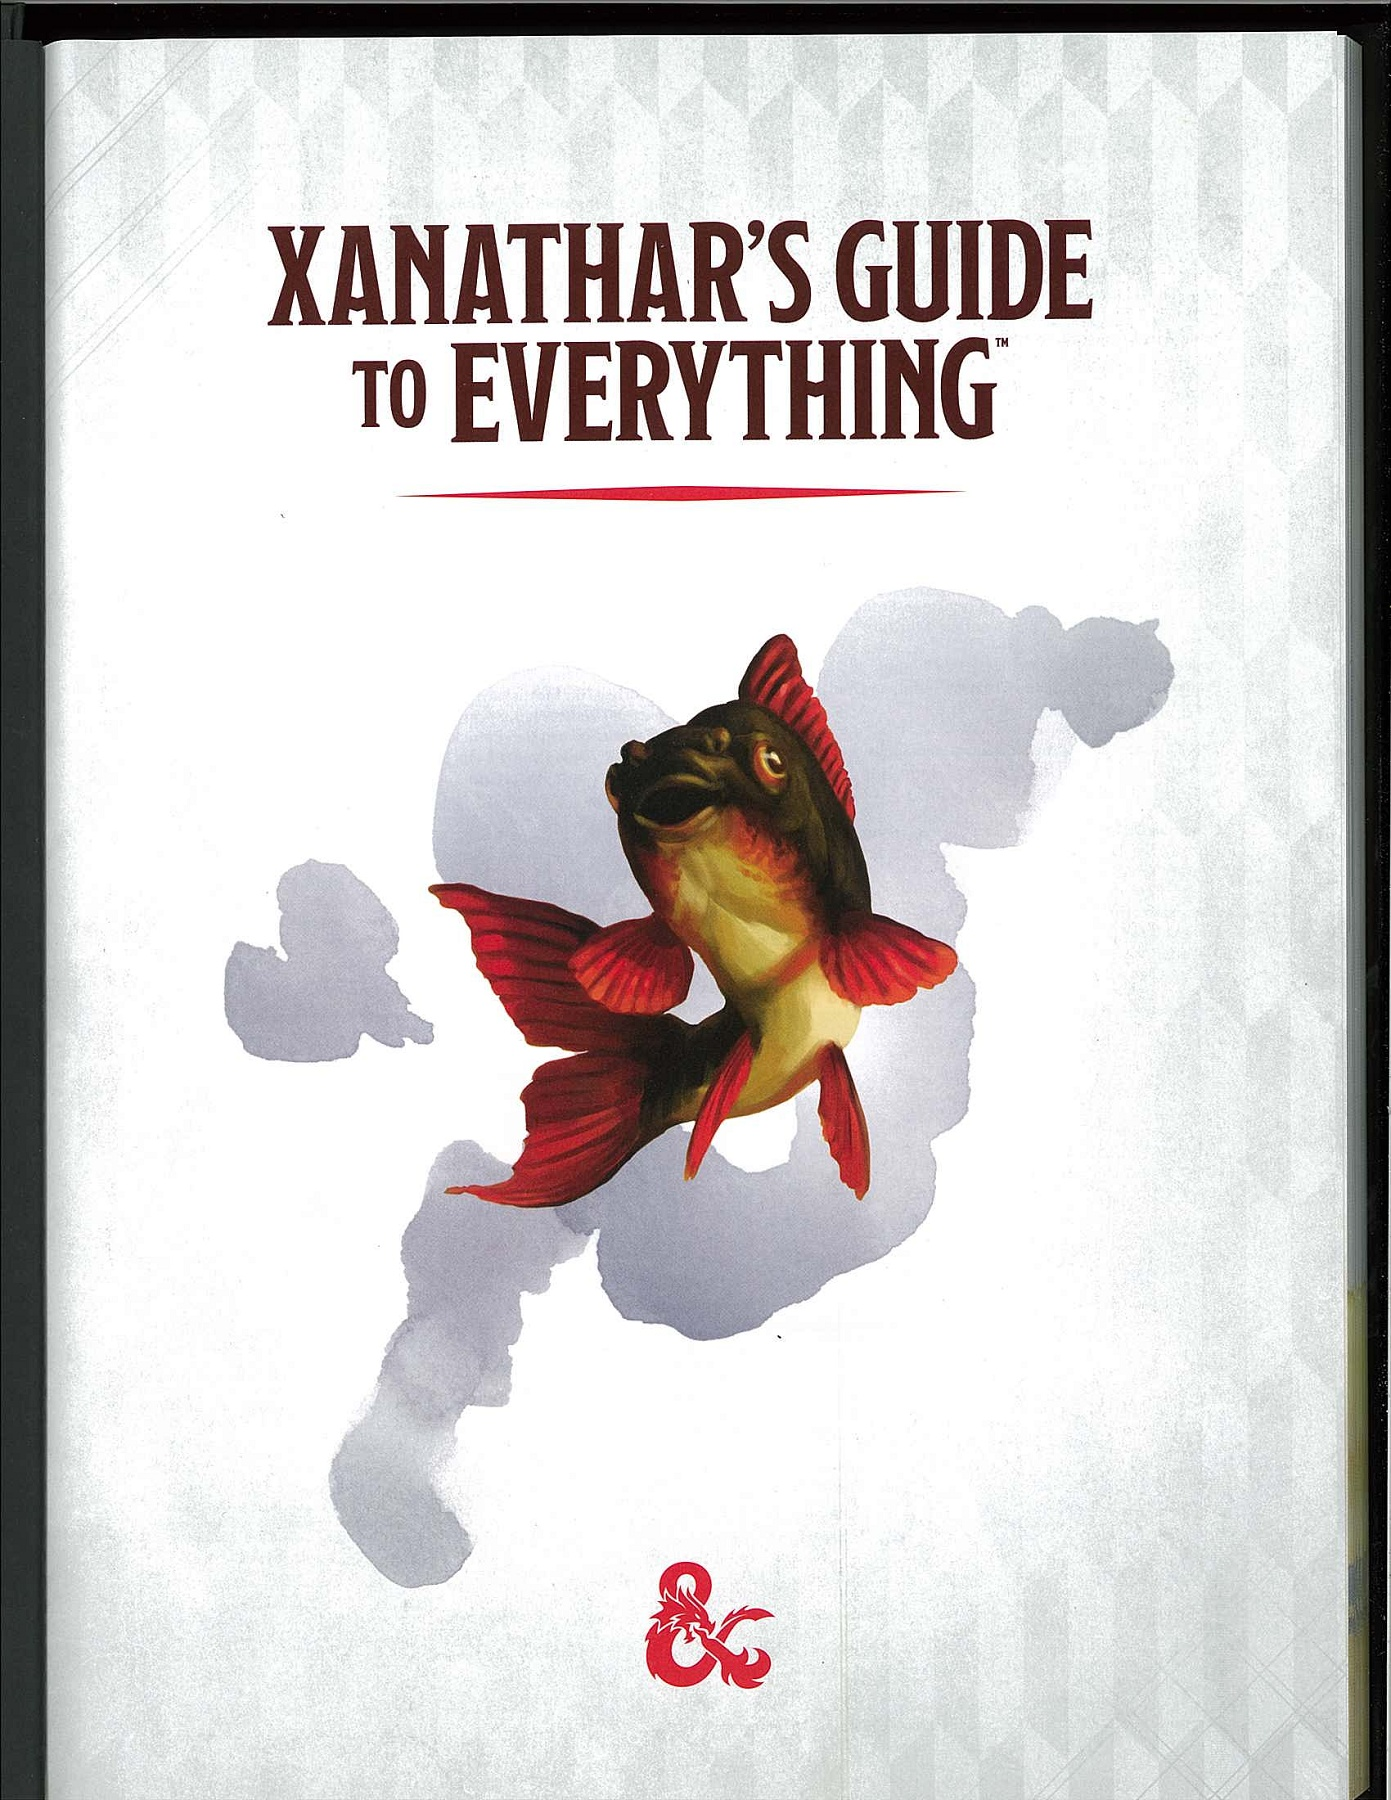 xanathar-s-guide-to-everything Pages 51 - 100 - Text Version | AnyFlip